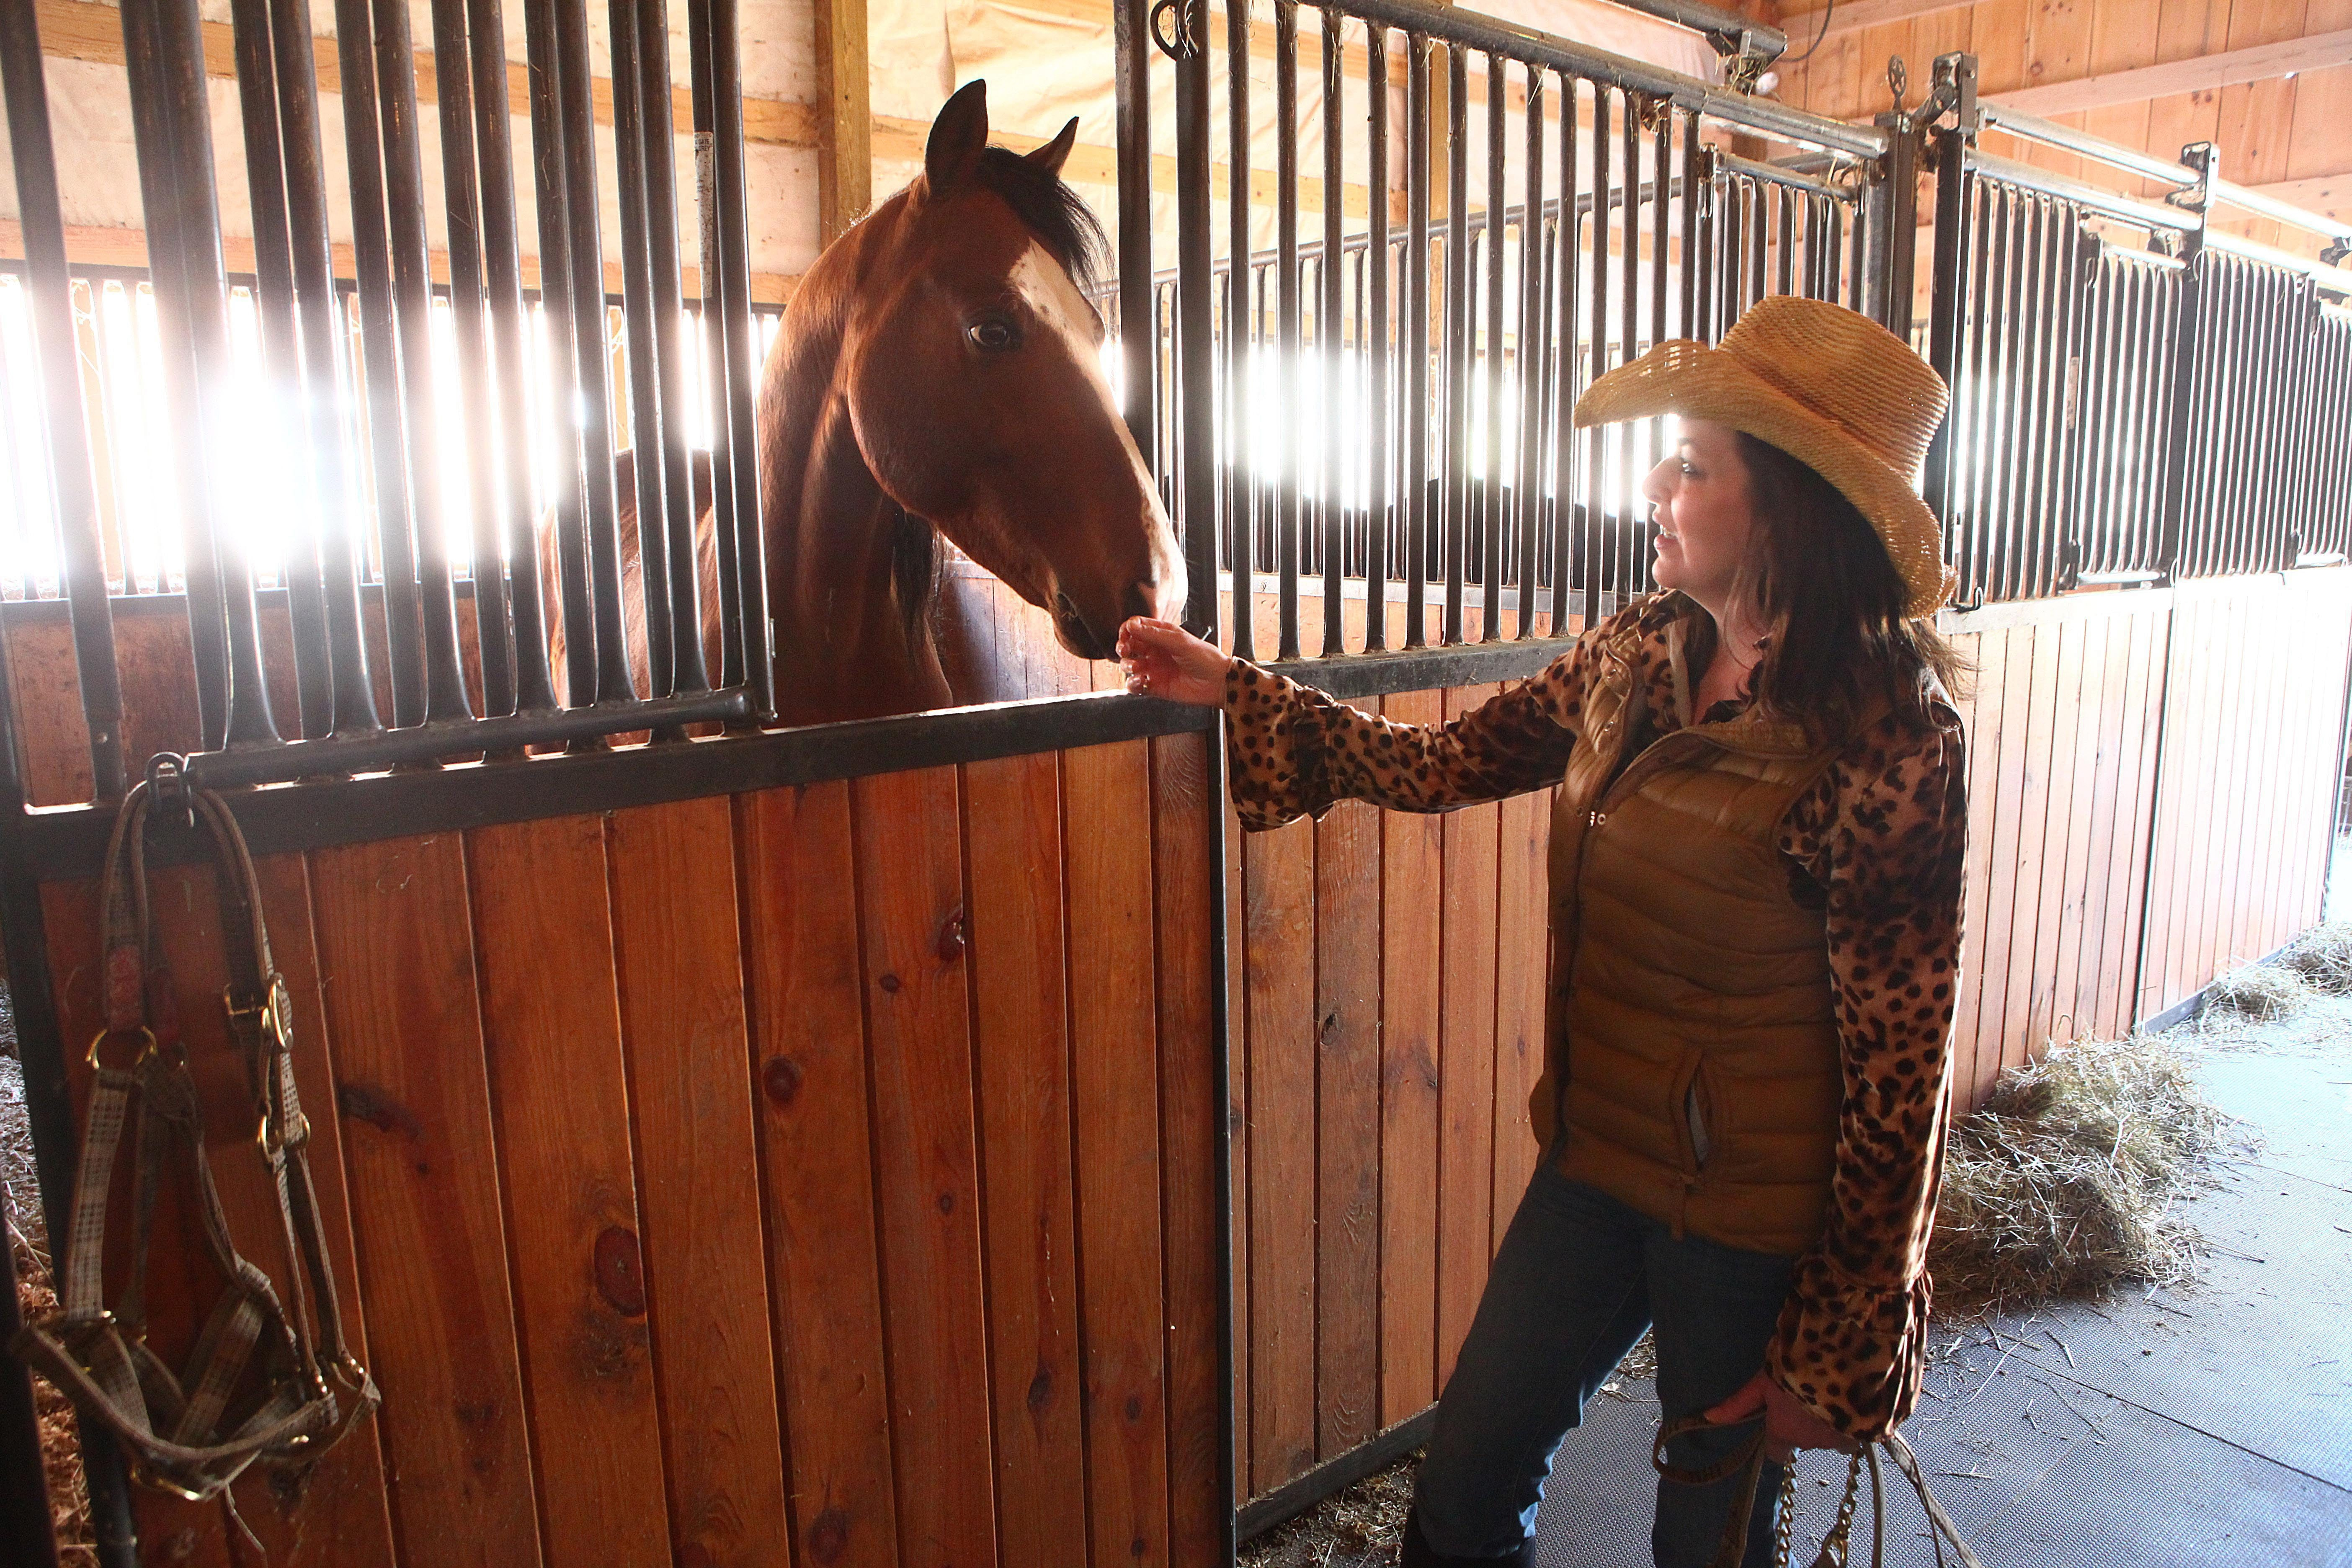 A file photo shows Beth Lynn Hoskins at her stable in Aurora with one of her horses.